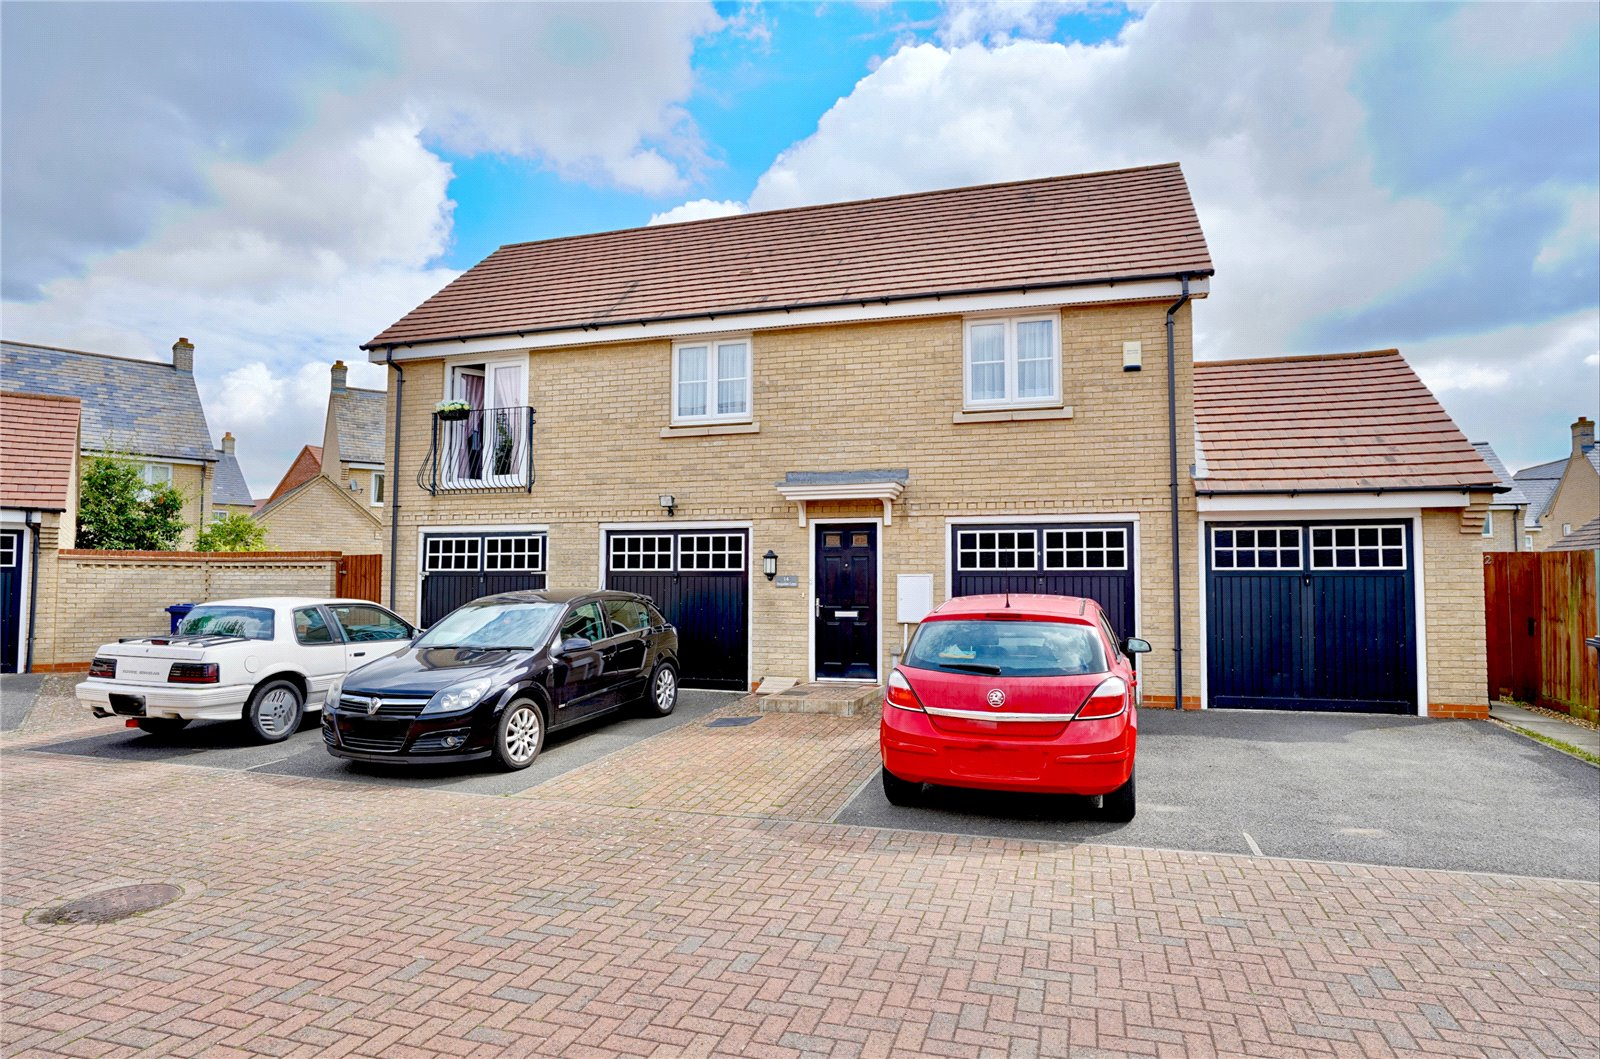 2 bed  for sale in Hogsden Leys, St. Neots, PE19